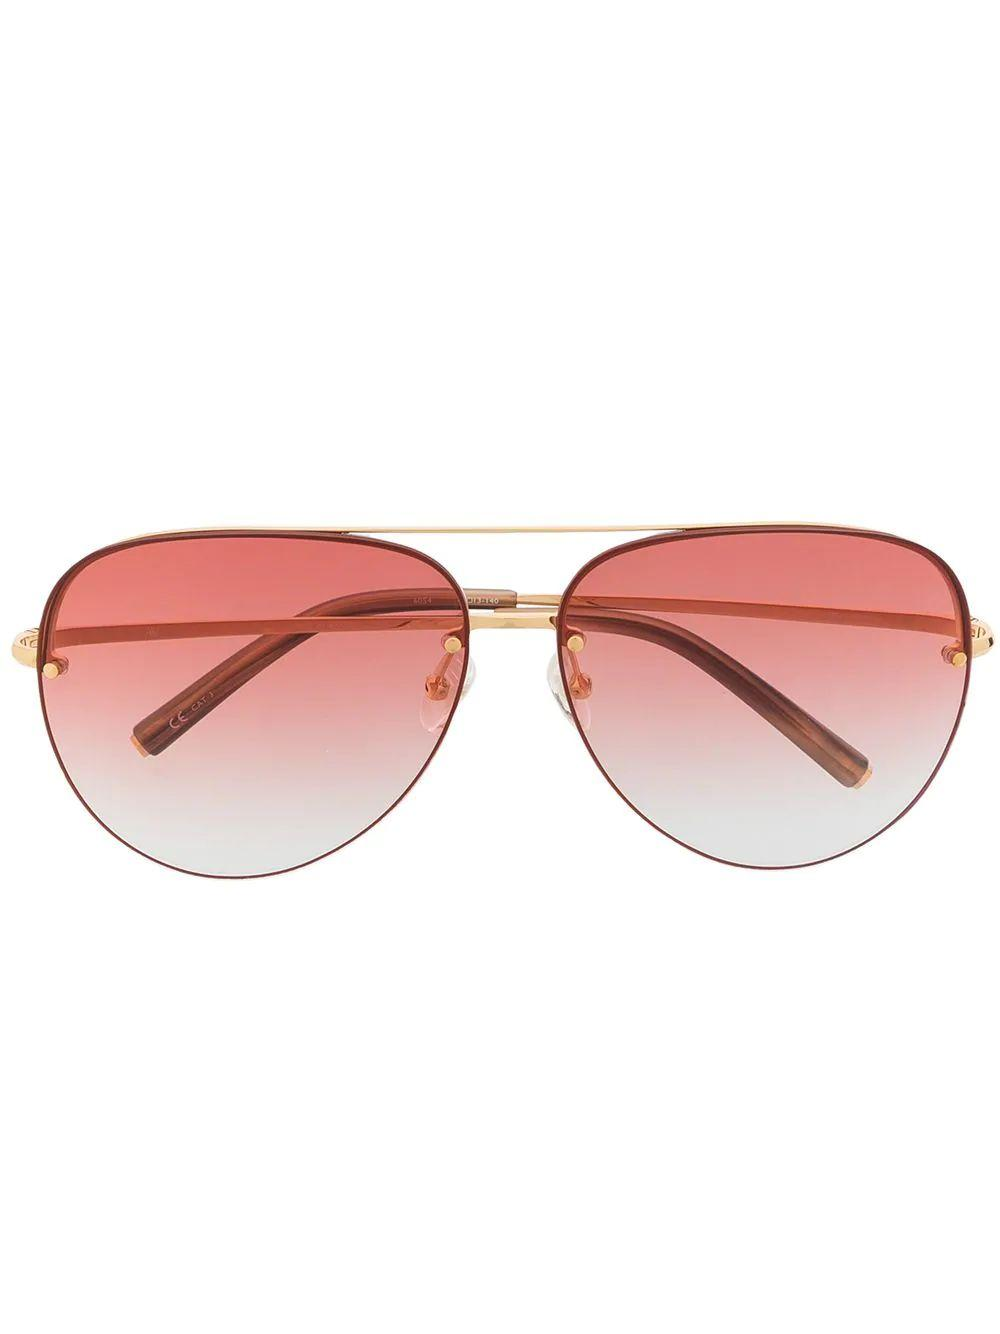 Clover Aviator Sunglasses